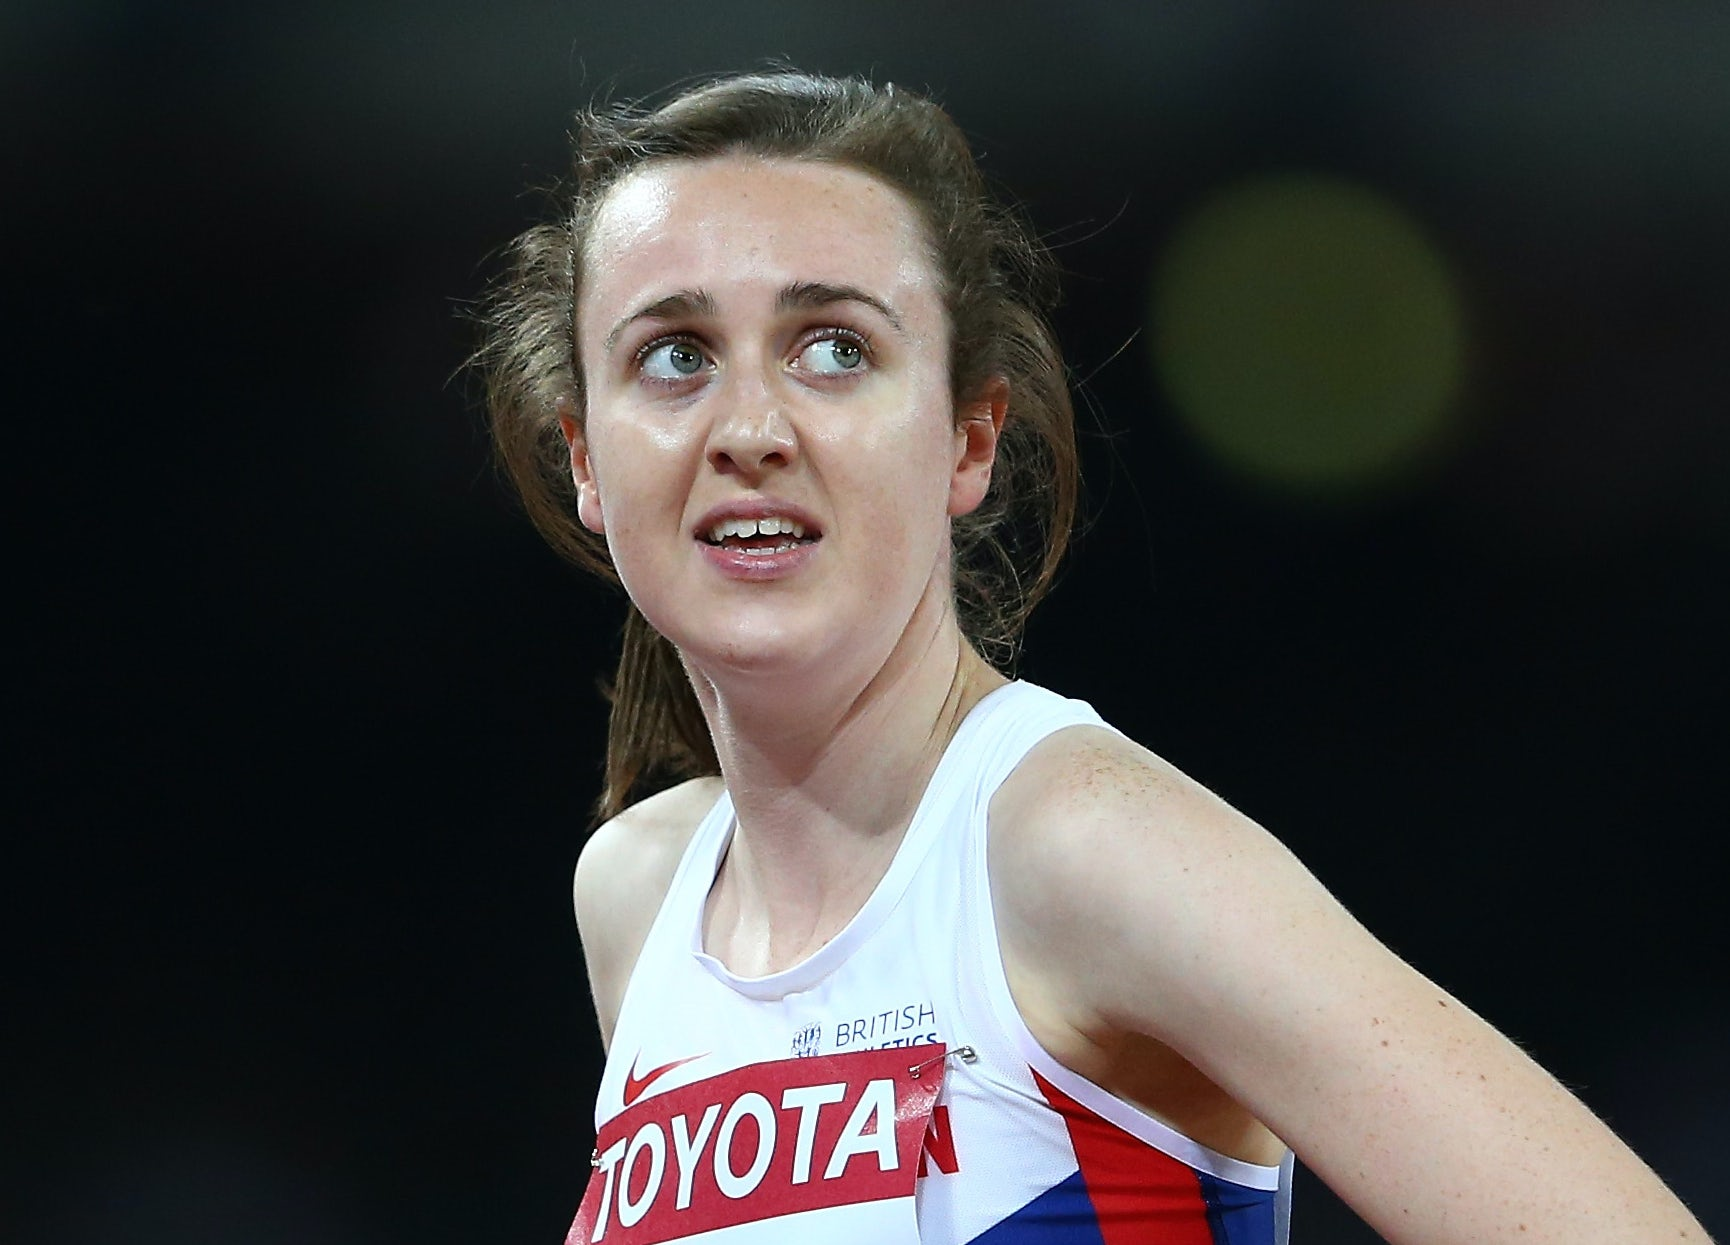 Laura Muir of Great Britain looks on after competing in the Women's 1500 metres semi-final the during day two of the 15th IAAF World Athletics Championships Beijing 2015 at Beijing National Stadium on August 23, 2015